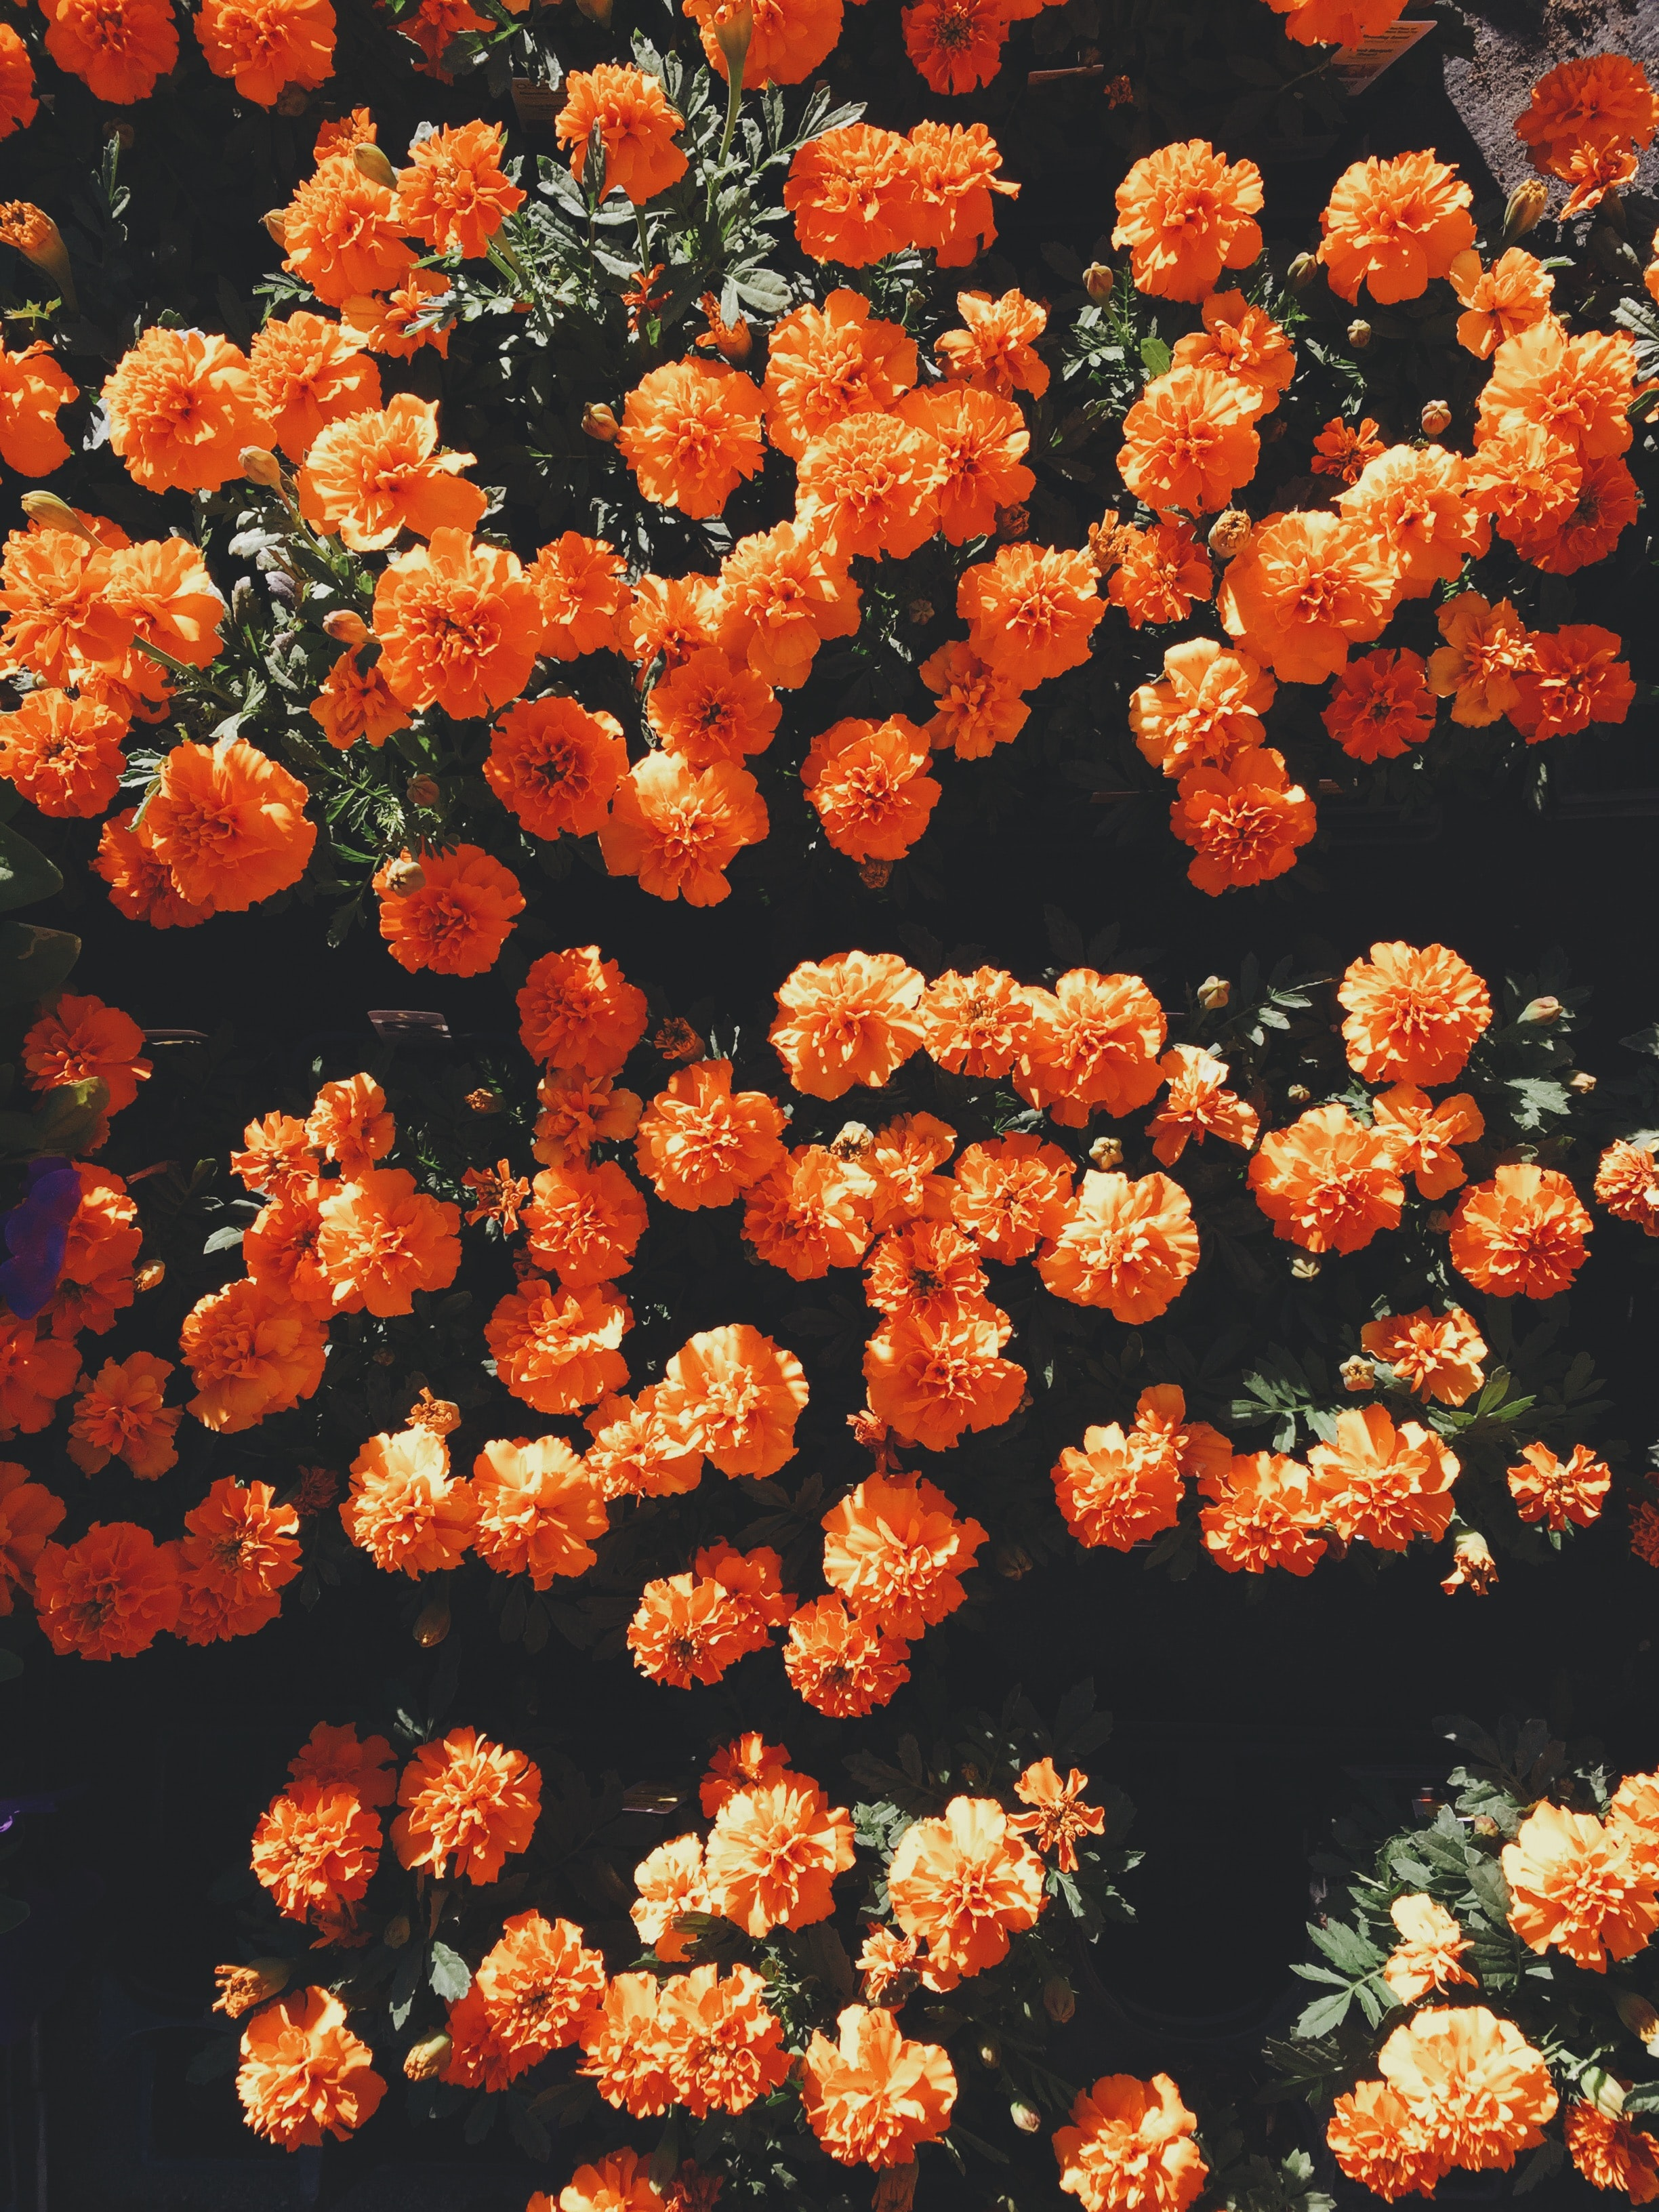 an overhead shot of a vibrant orange flower bed - Flowers